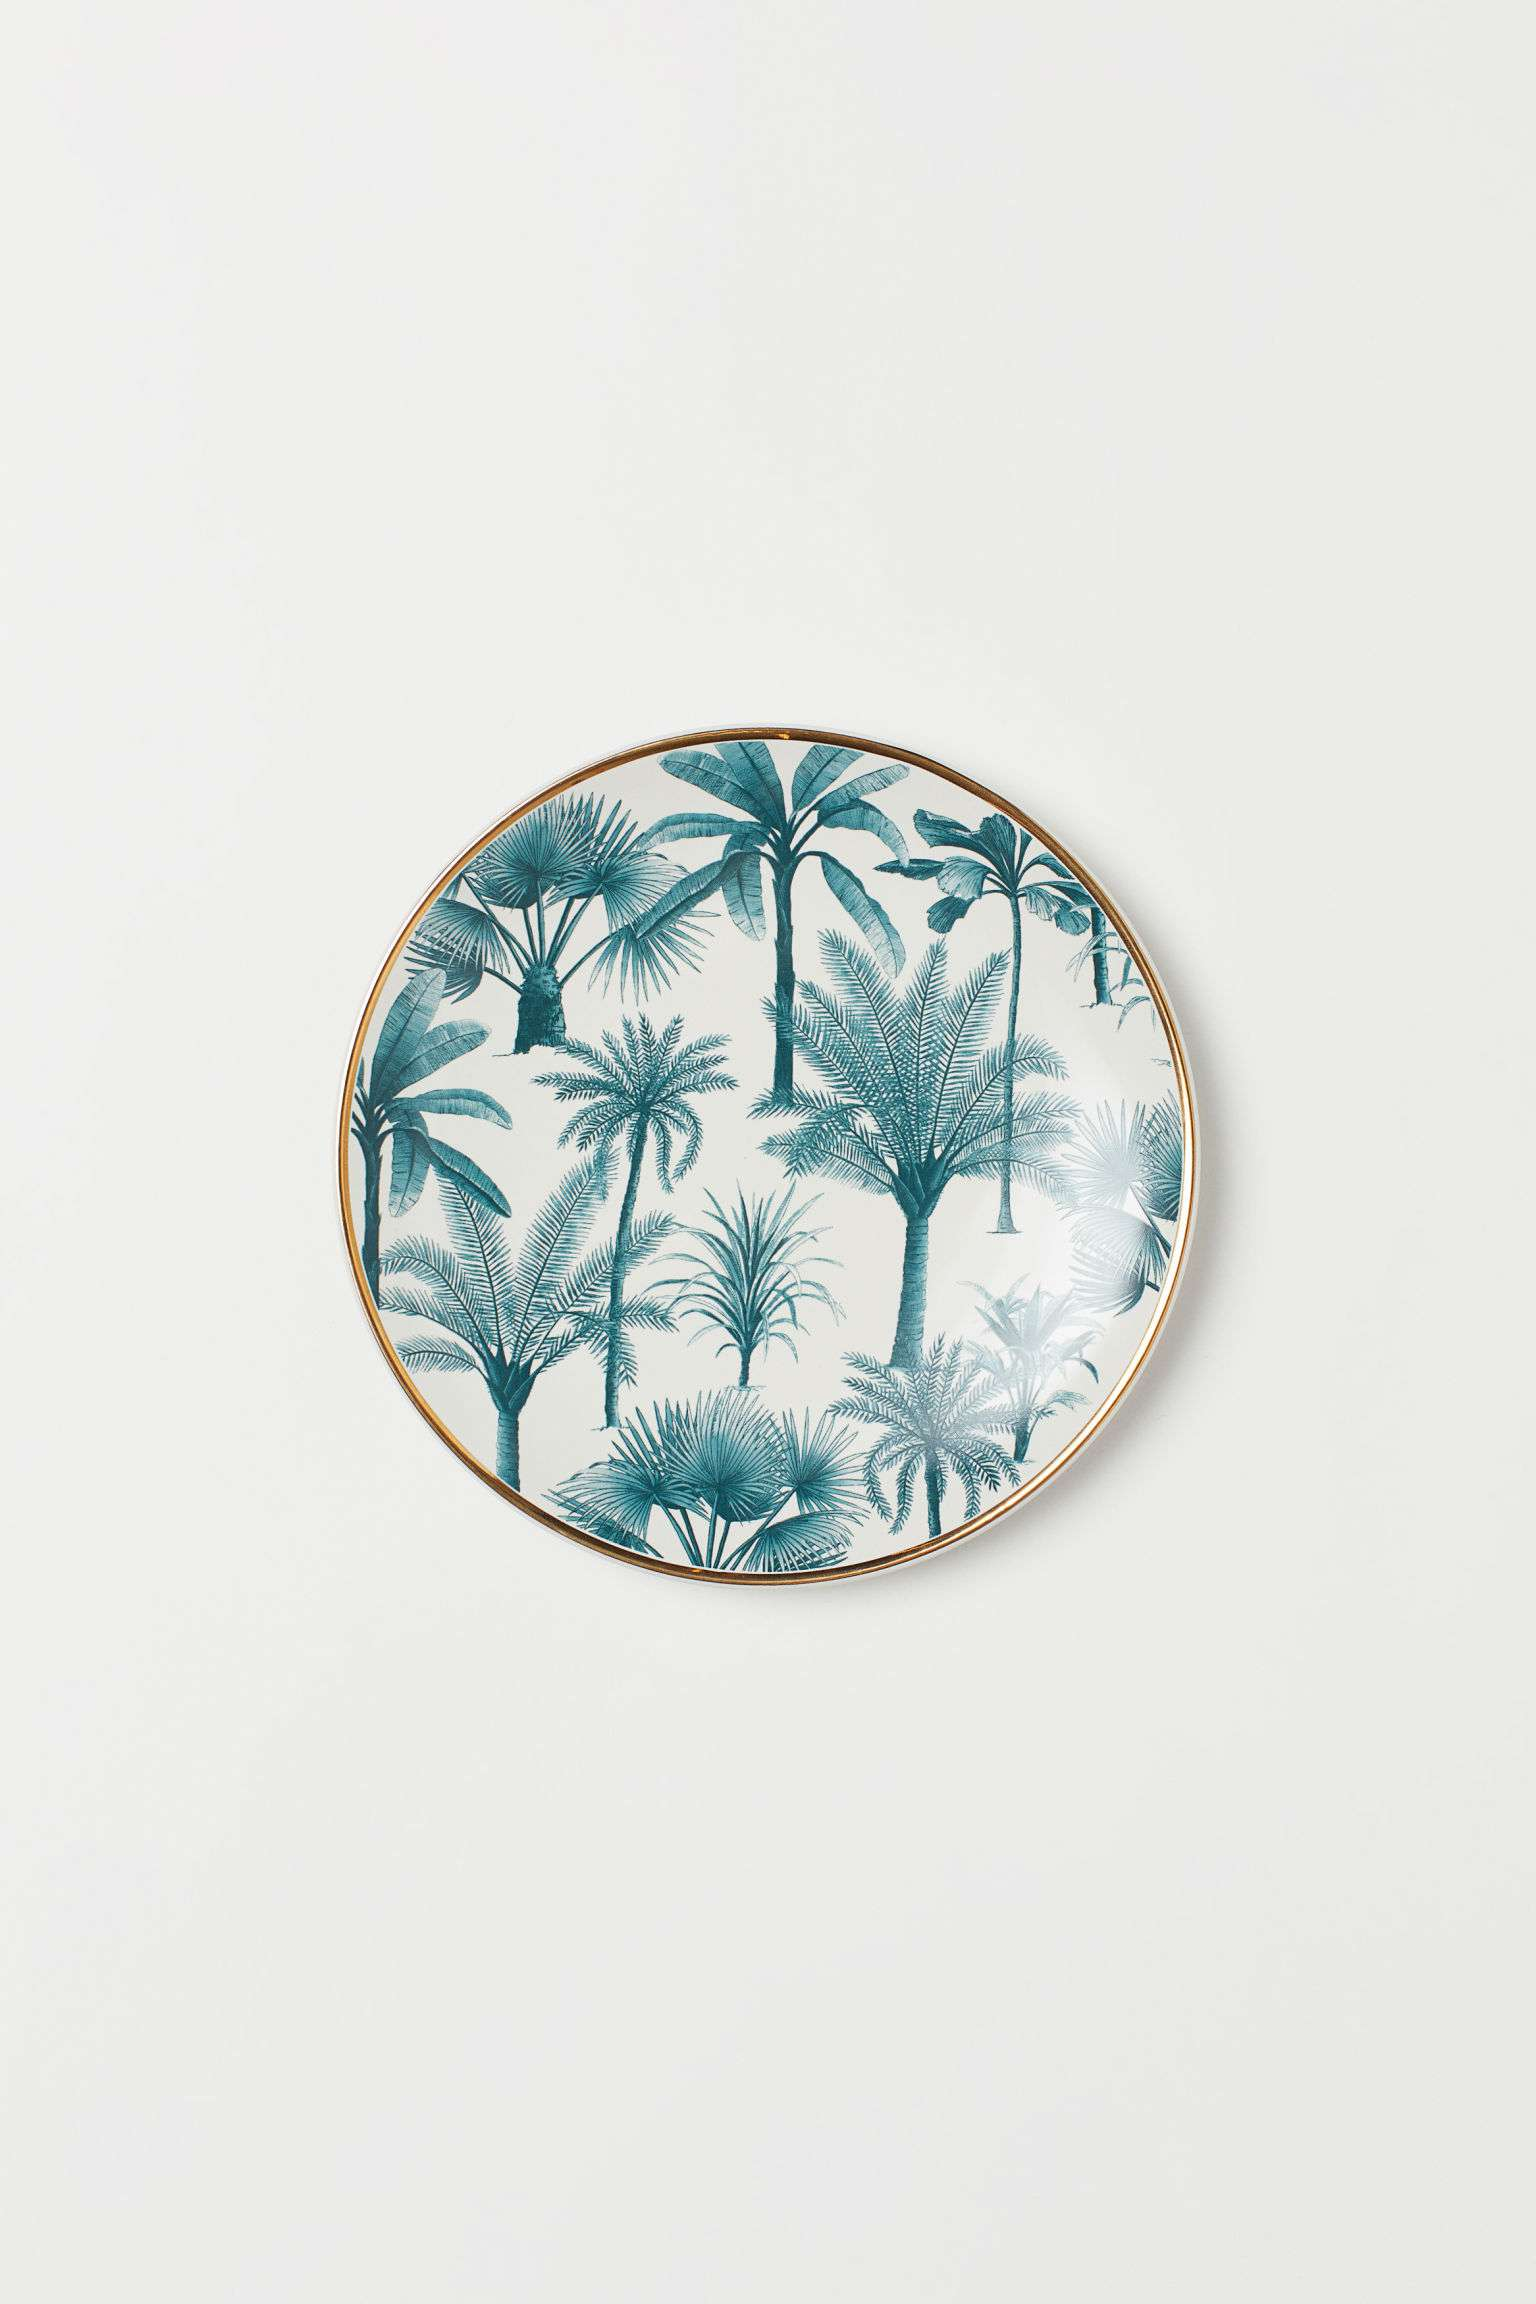 Patterned Plate